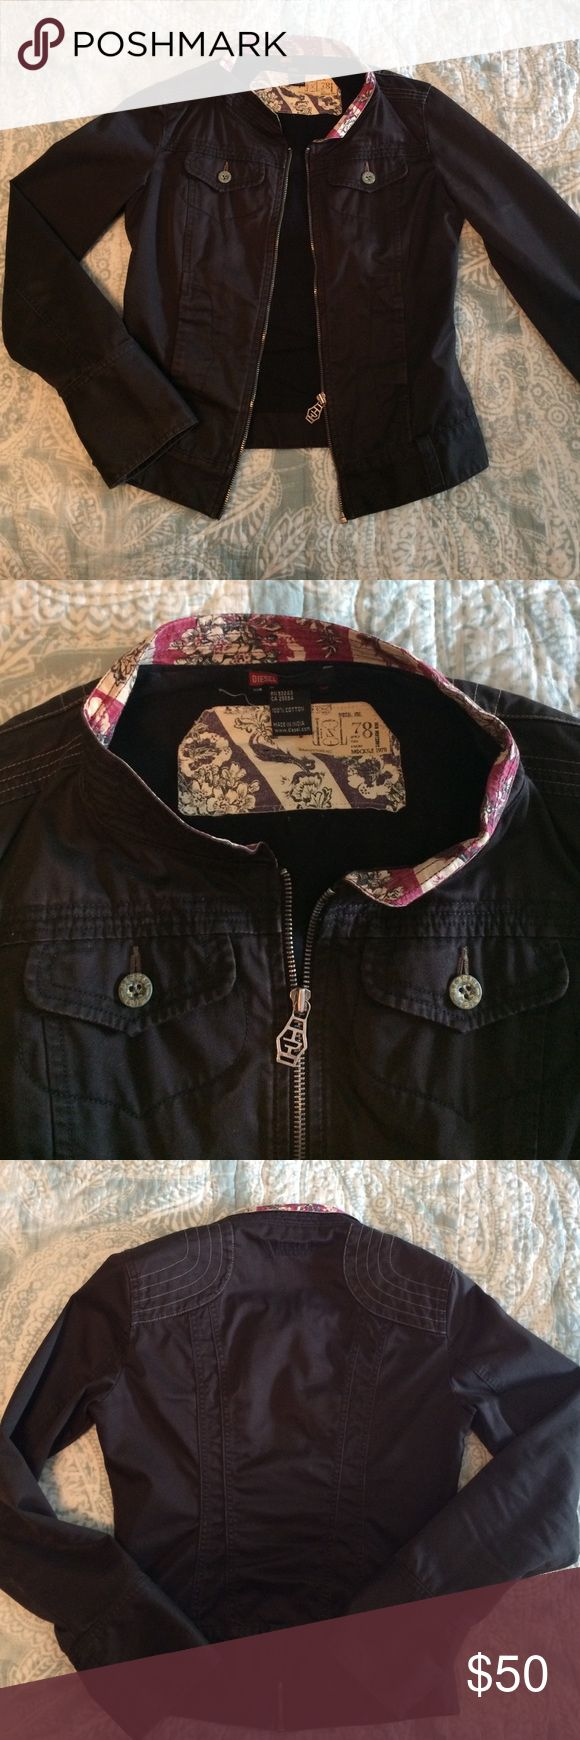 Early Diesel denim jacket-dark grey/black Incredible Diesel jacket purchased around 2005. No signs of wear. Dark grey/black in color with floral design around neck. Size medium, but fits smaller. Diesel Jackets & Coats Jean Jackets